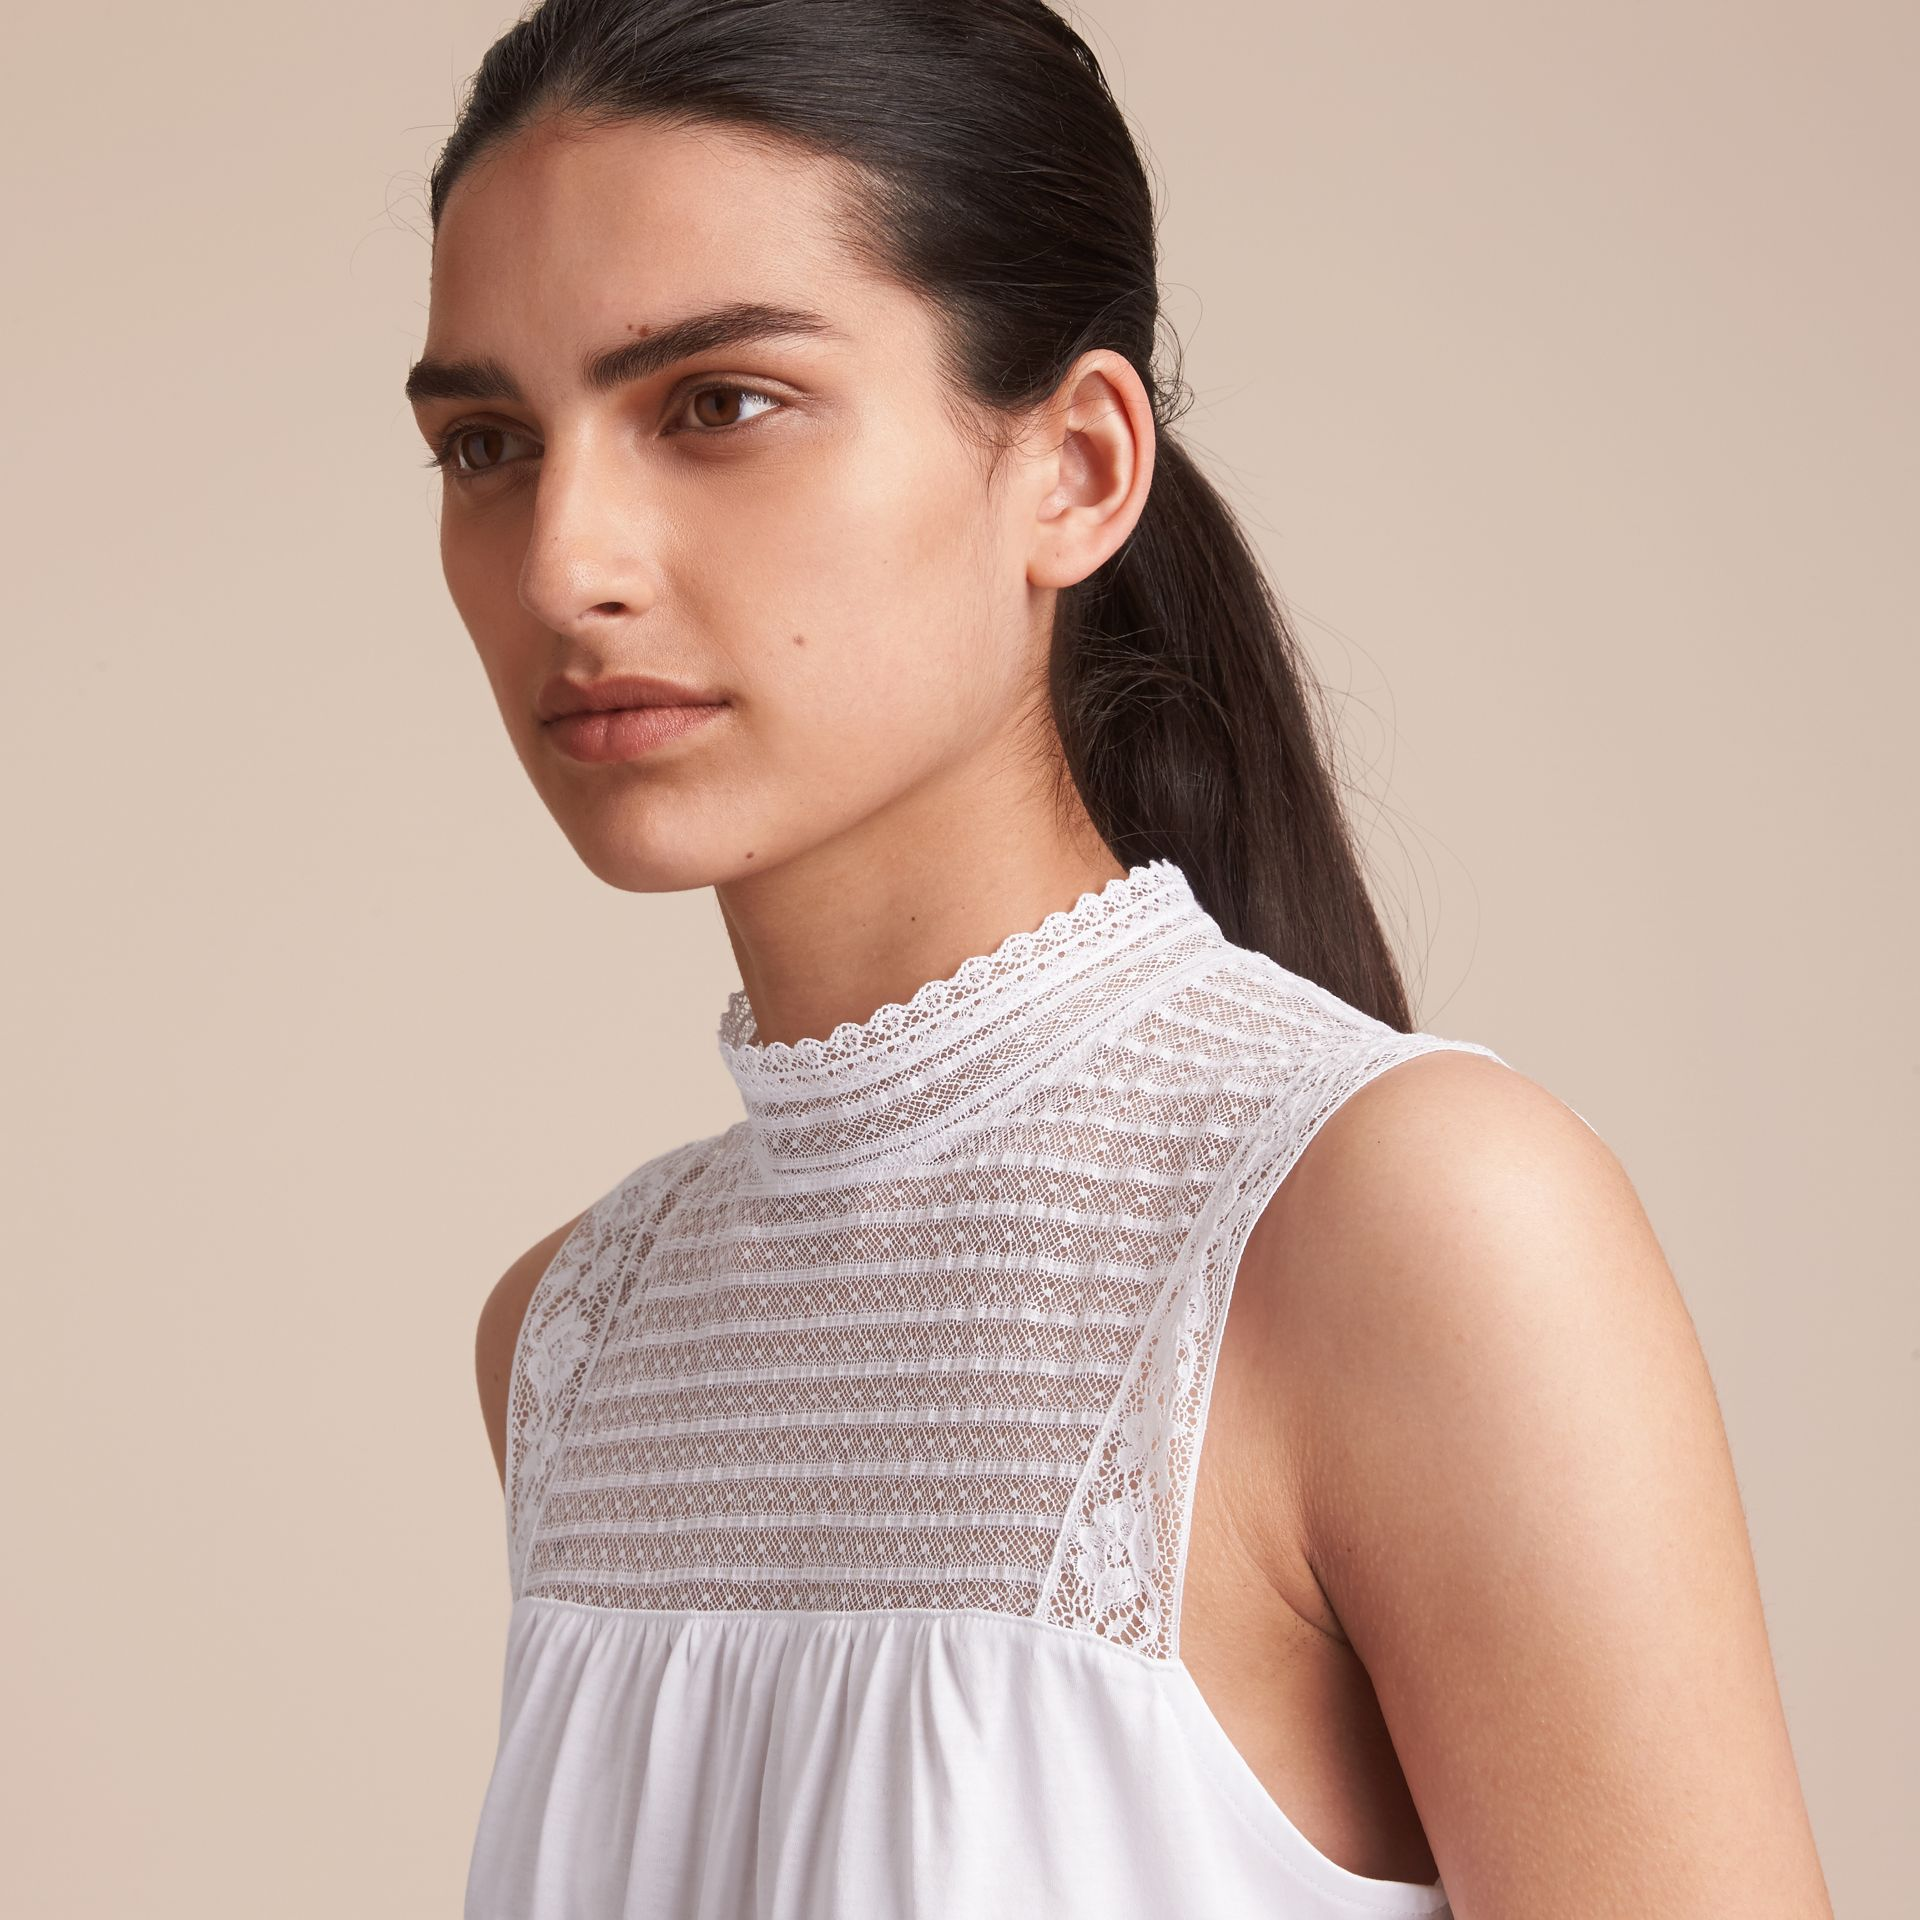 Sleeveless Lace Panel Cotton Top in White - Women | Burberry - gallery image 5